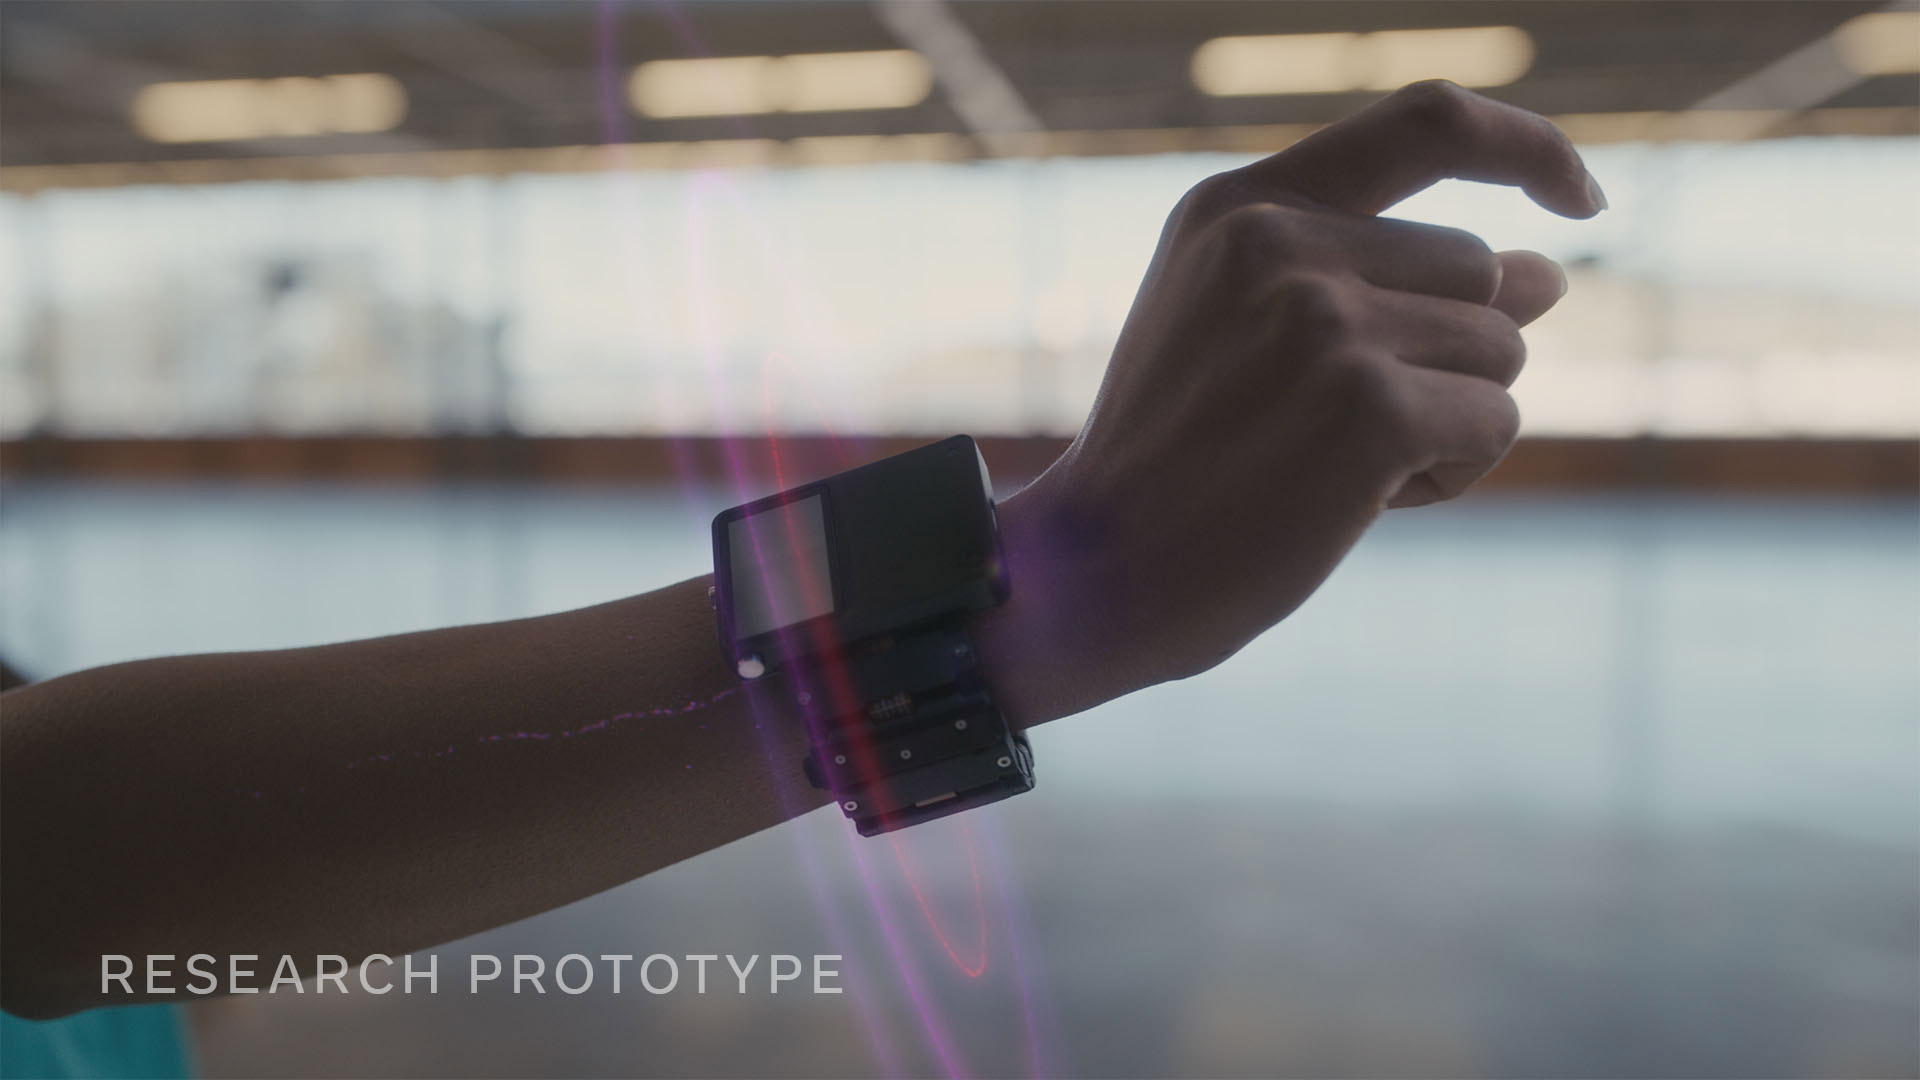 Facebook Reveals Latest Wrist-worn Prototypes for XR Input & Haptics